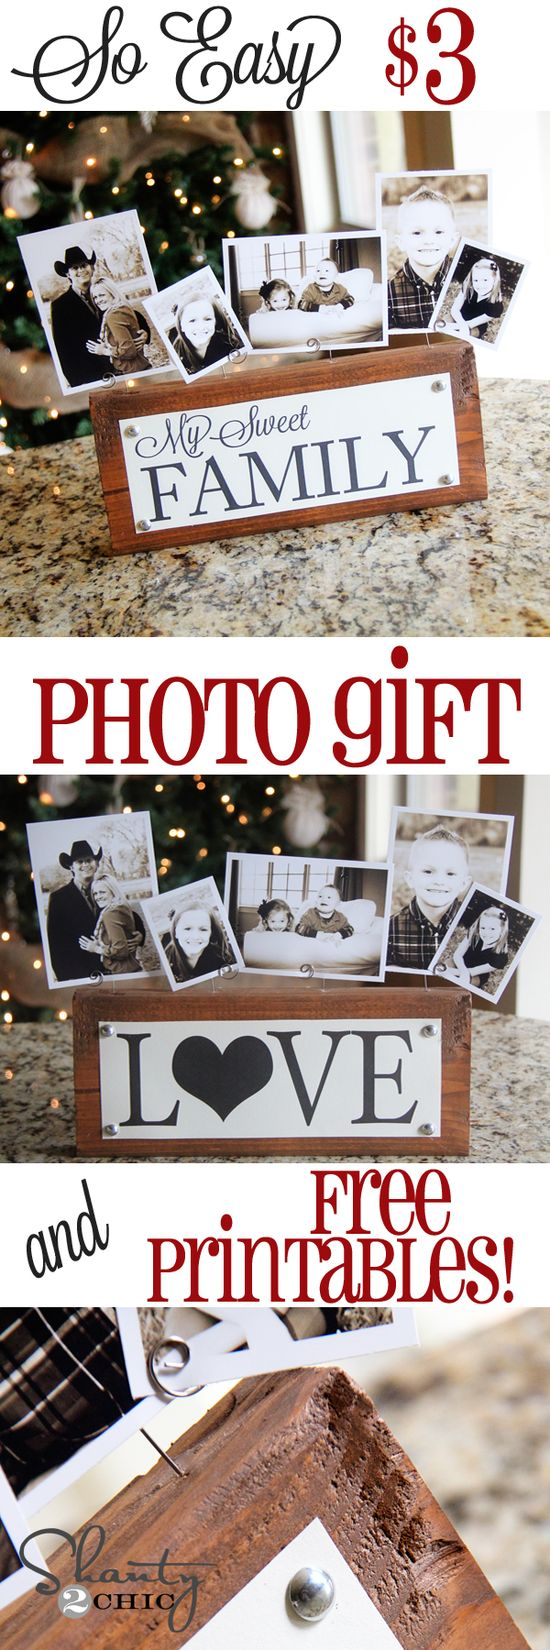 Great Photo Block Gift Idea for #Christmas from Shanty-2-Chic.com // Great Christmas gift for anyone and SO EASY! #12daysofchristmas